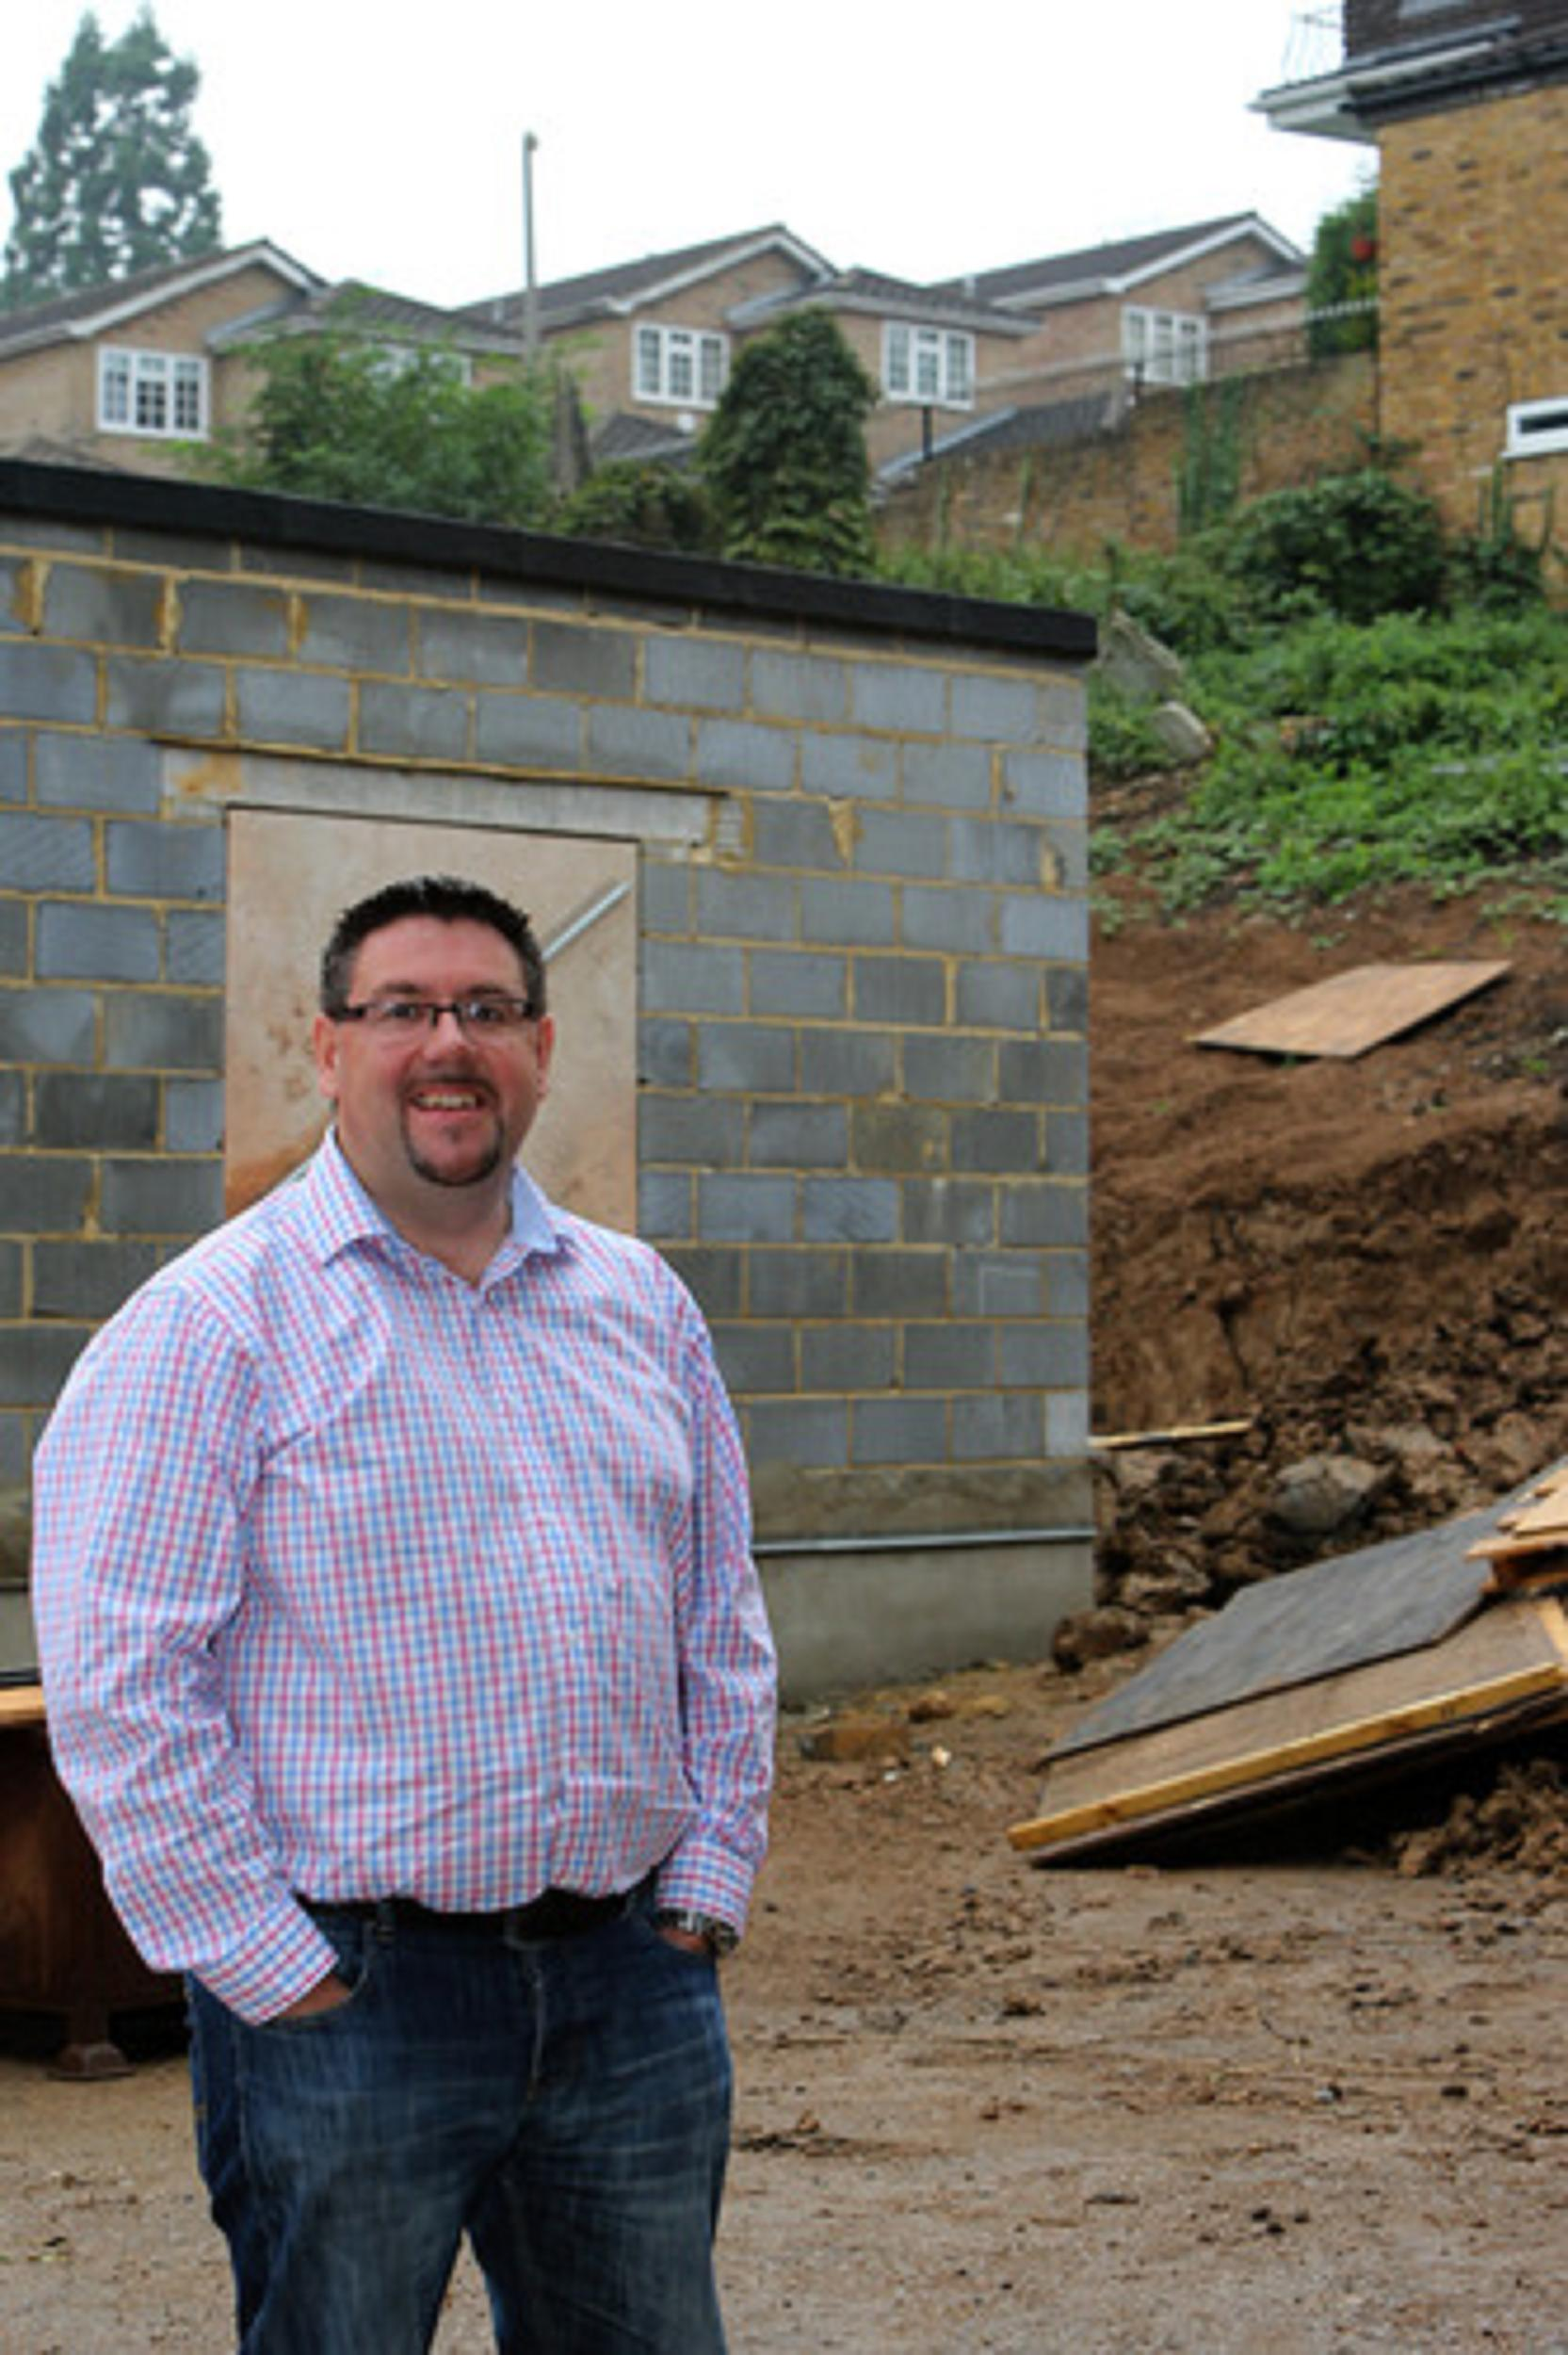 Reverend Wayne Dulson on the site of building works for the church nursery in 2013